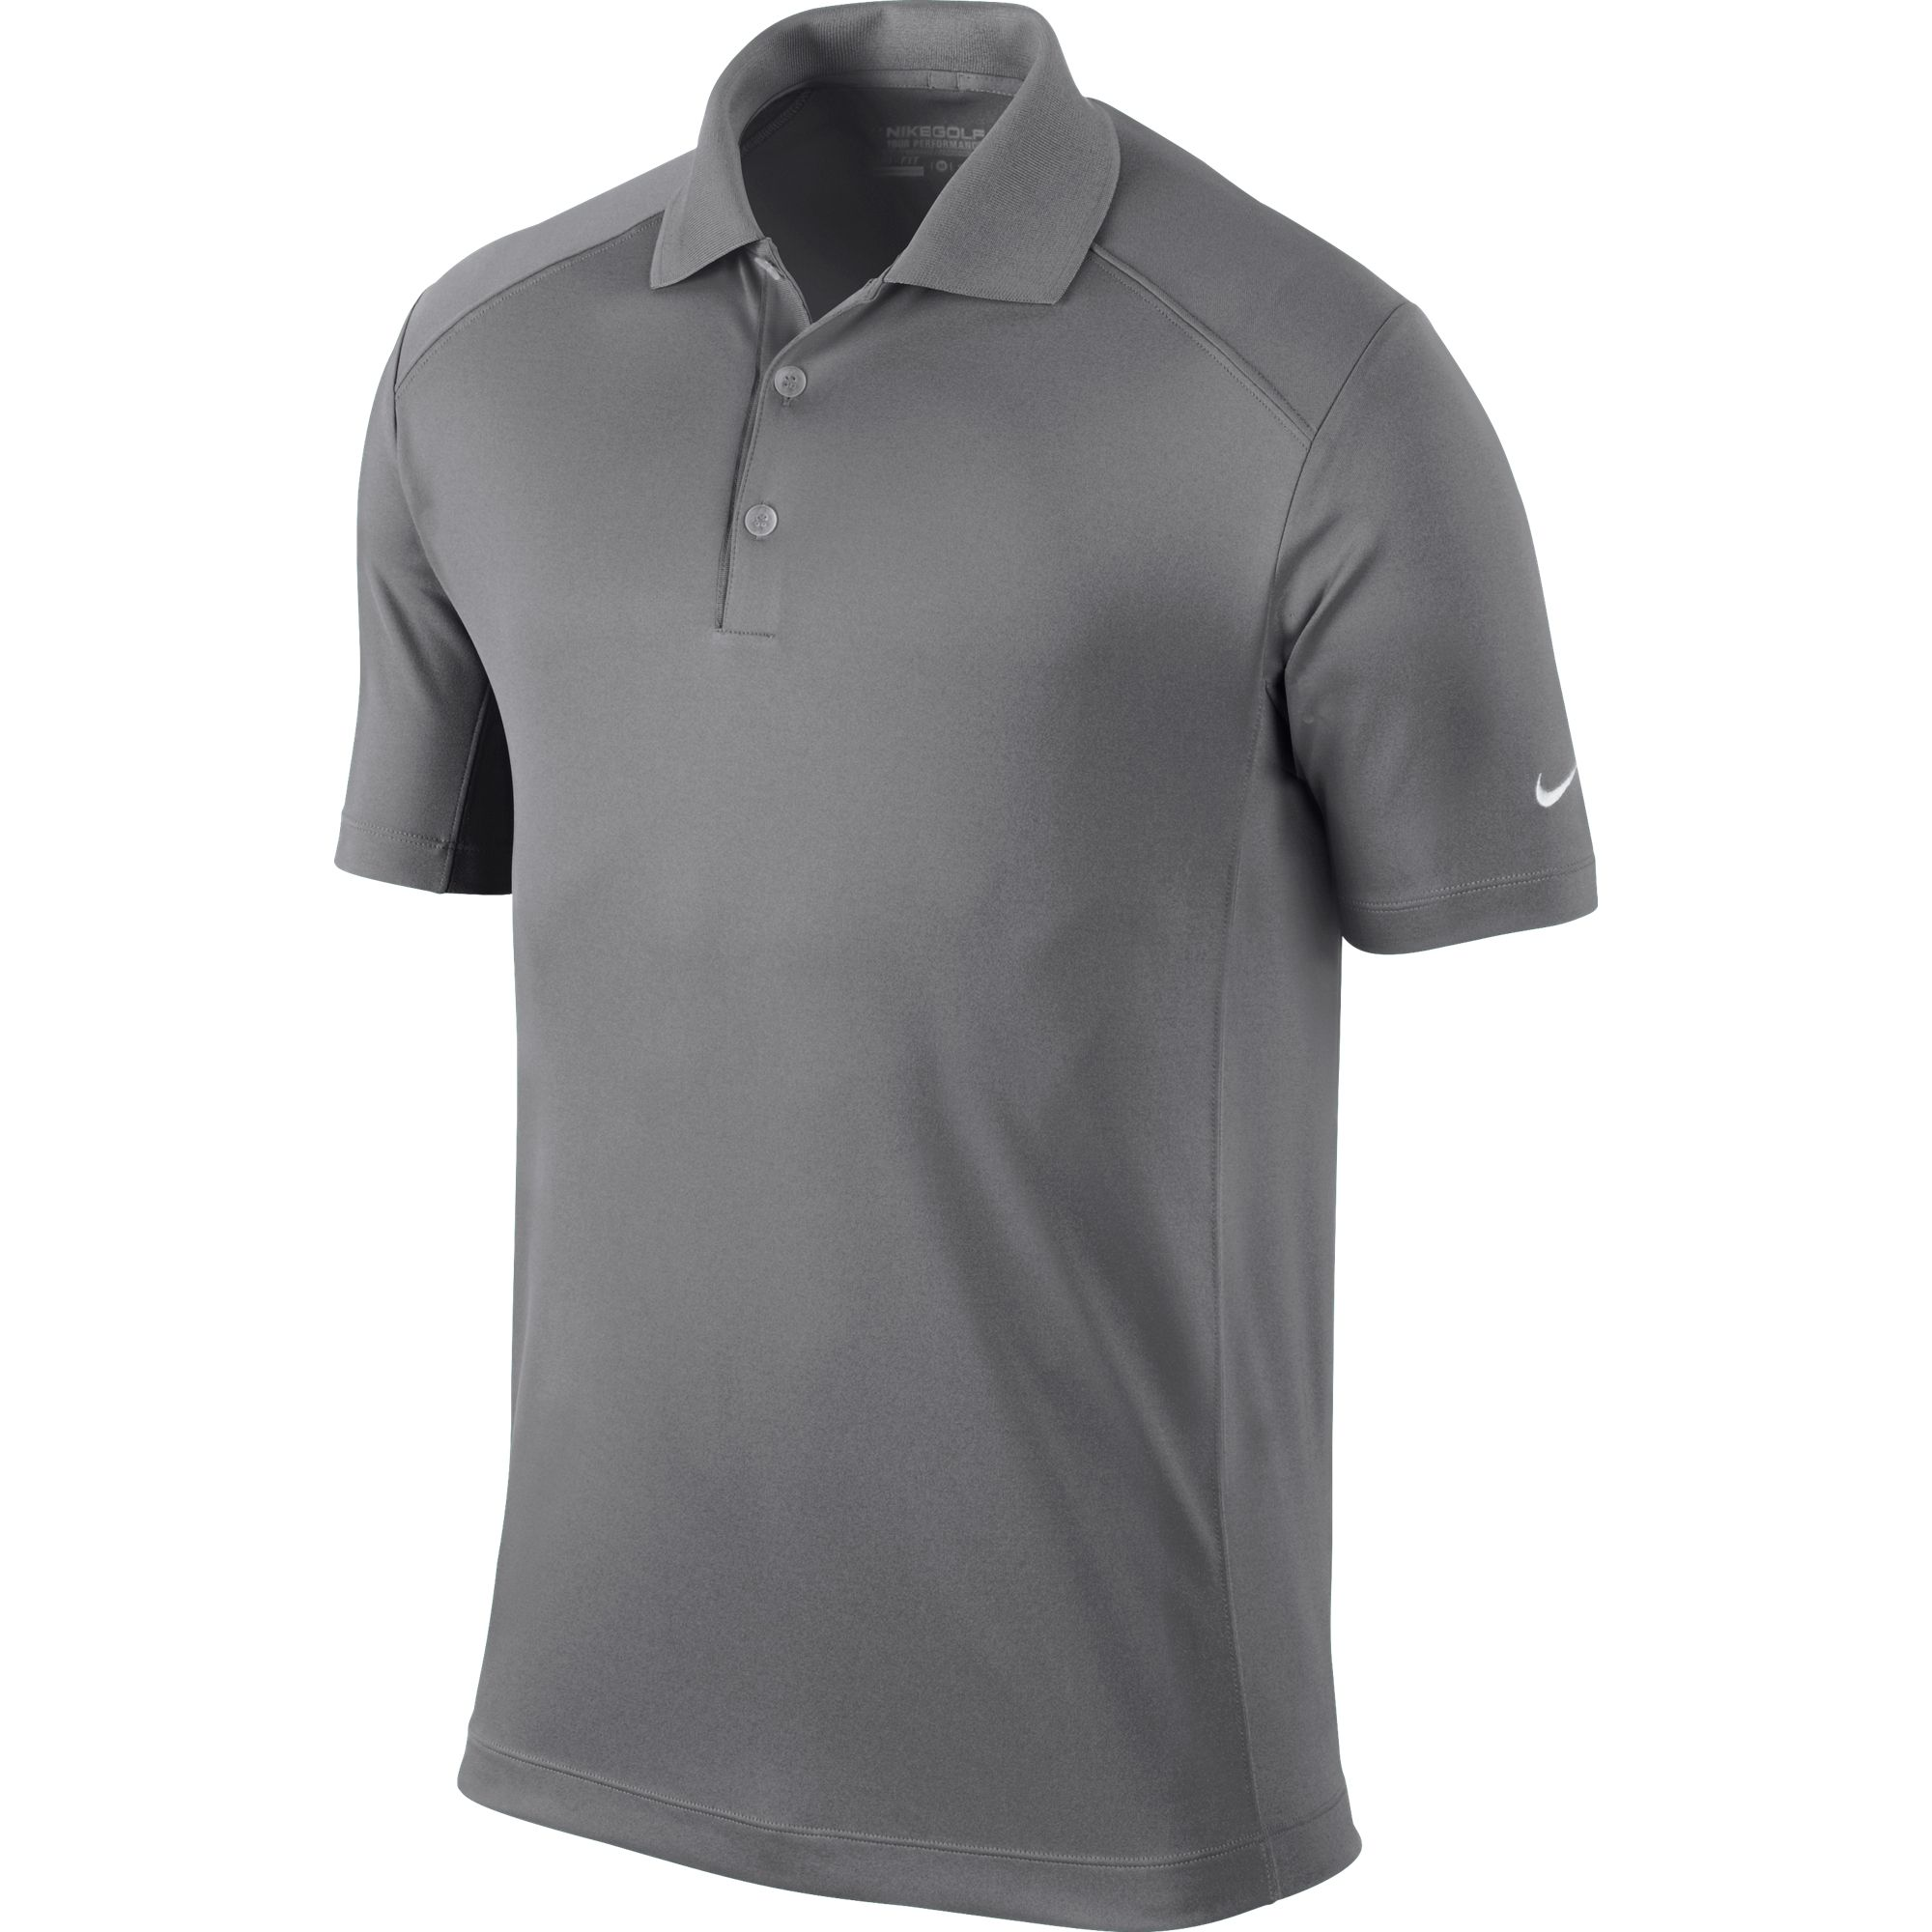 Men's Victory Solid Polo Golf Shirt, Black, swatch